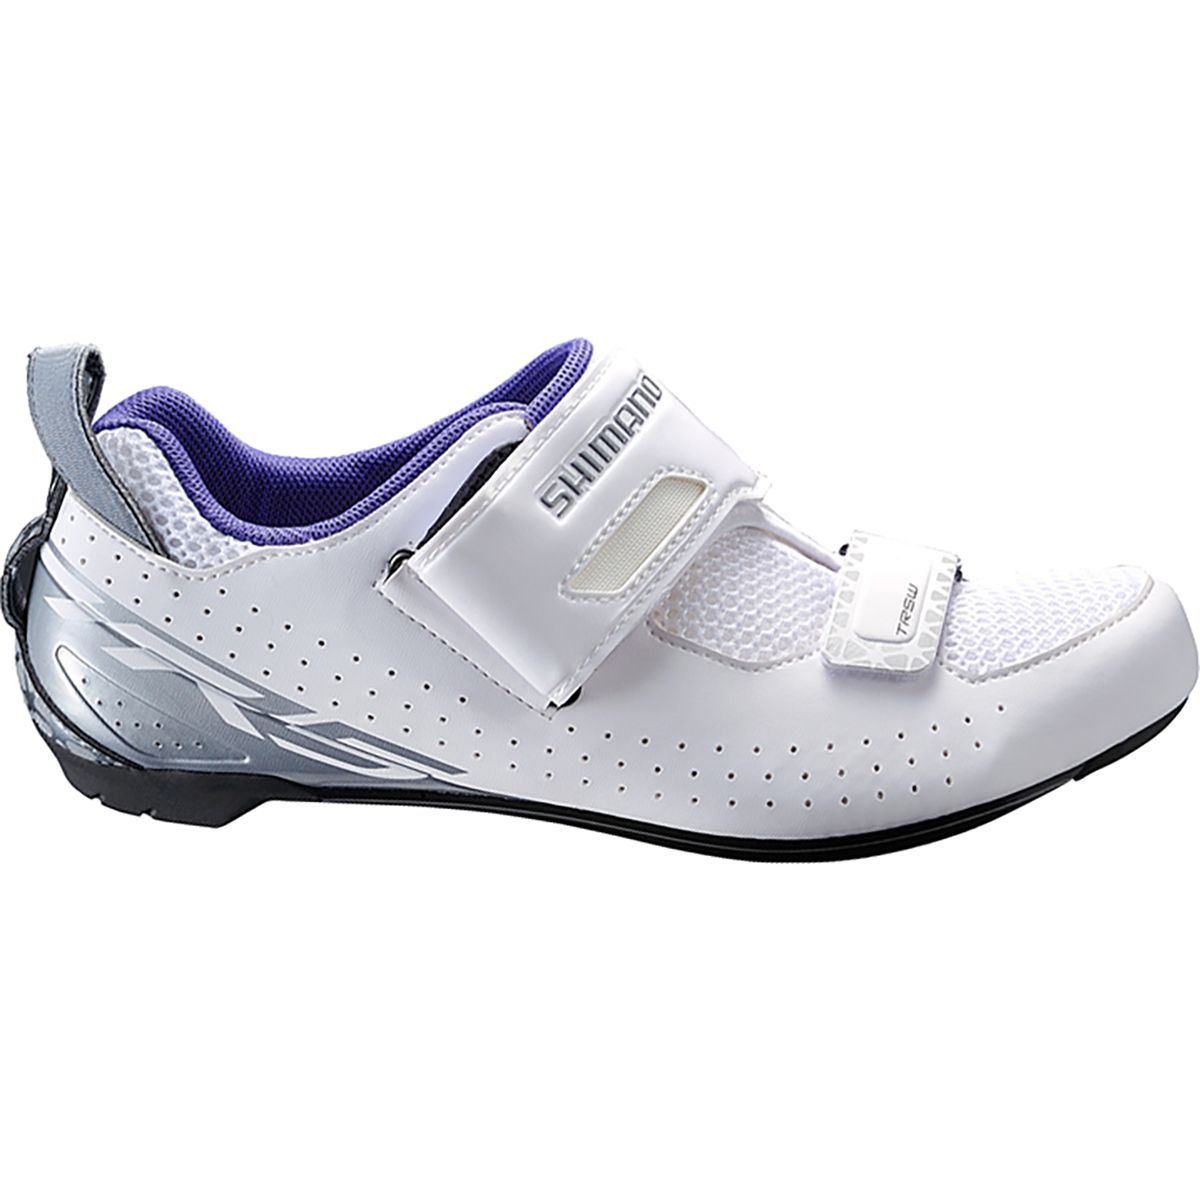 shimano sh tr5 cycling shoe s competitive cyclist